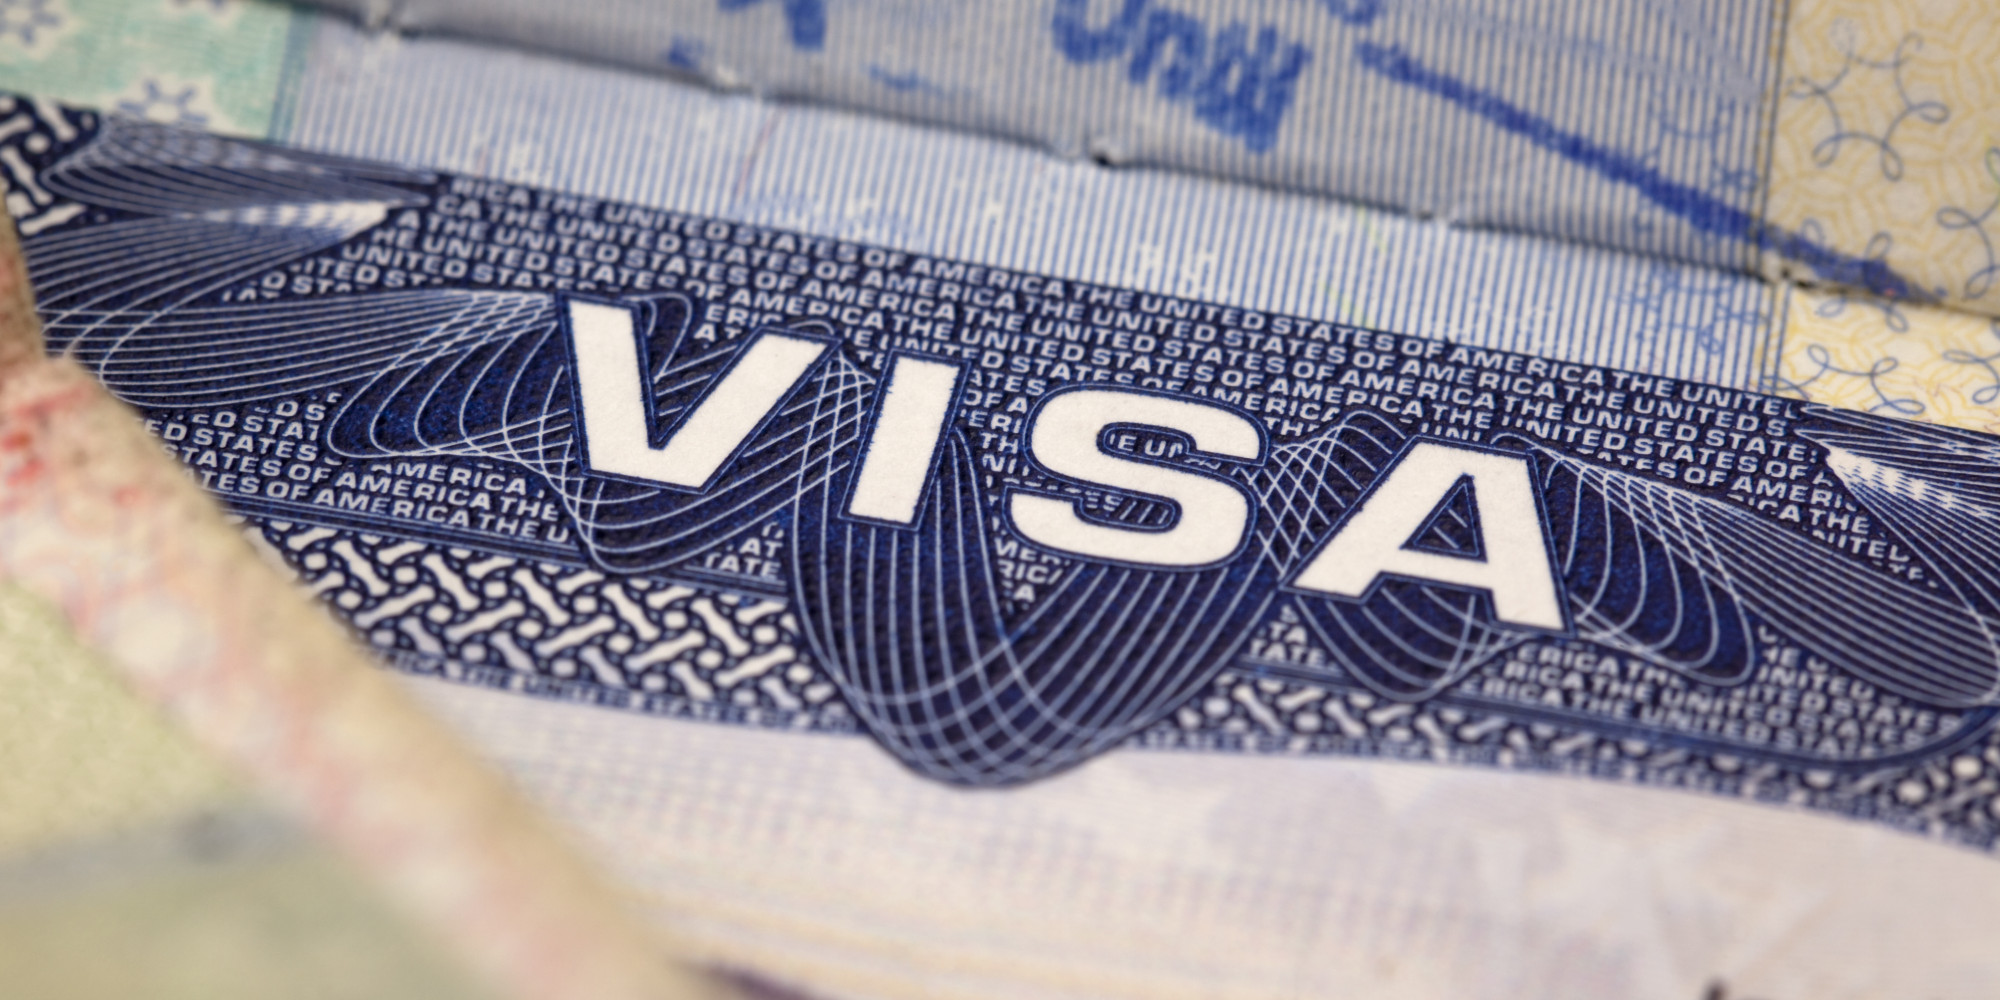 Some U.S. Visas are Now Easier to Get - What this Means for the Future of Immigration (1)